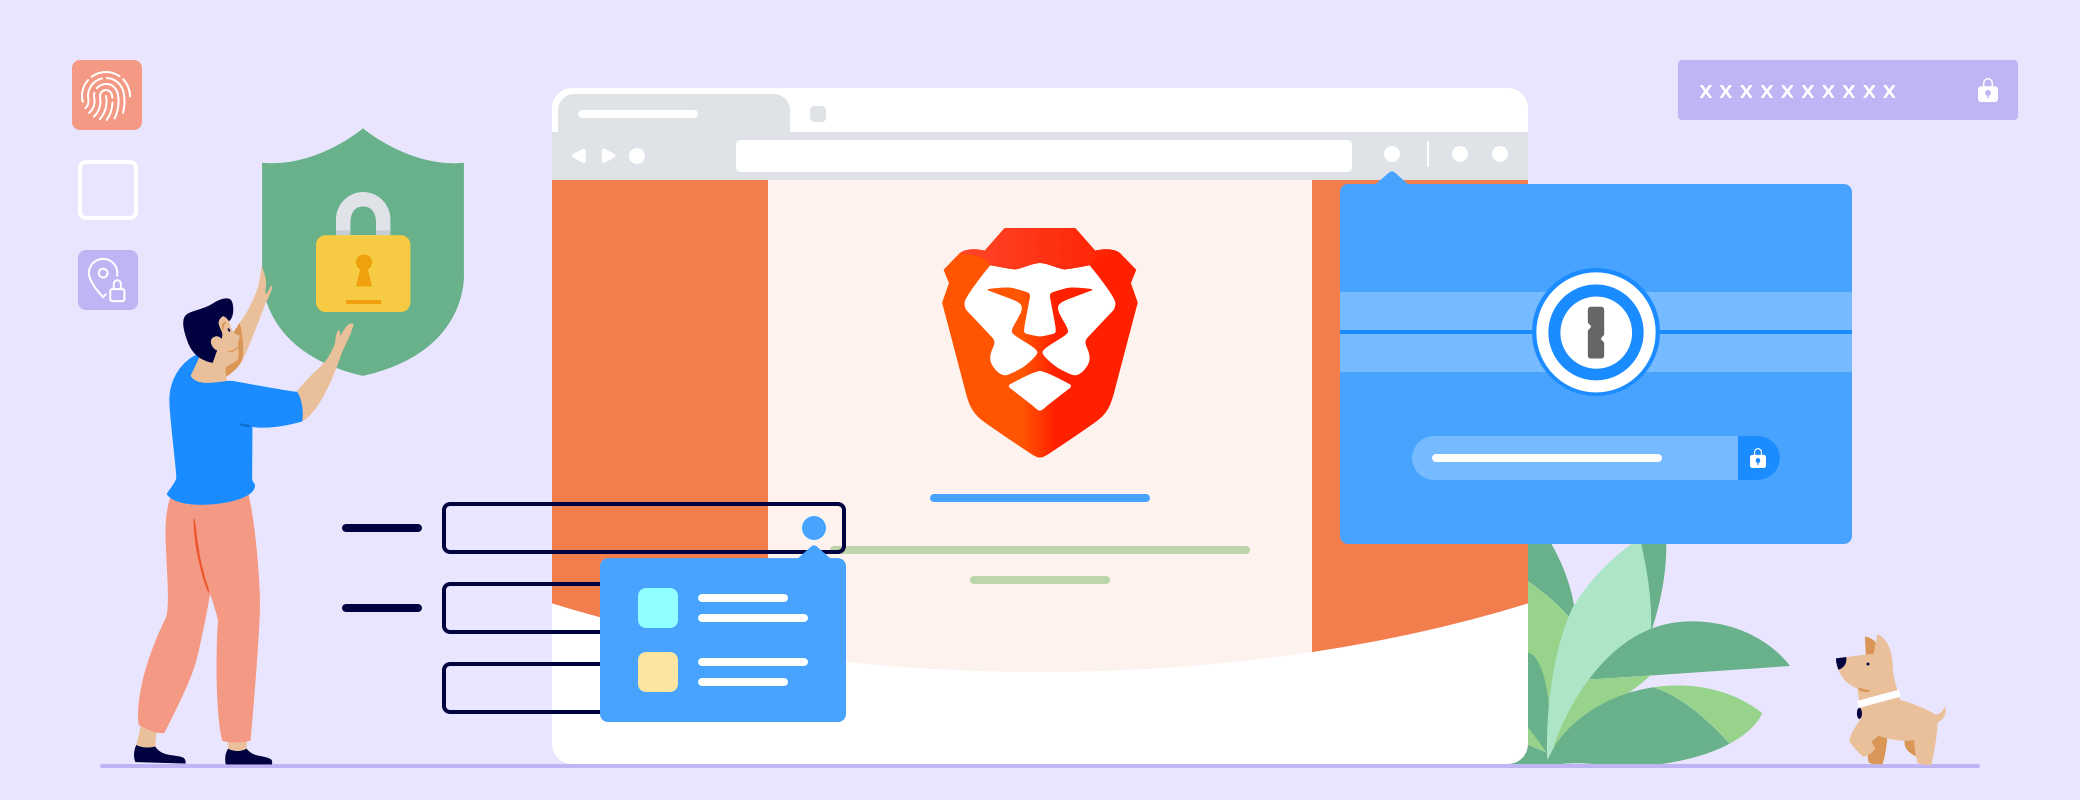 Testing out Brave with 1Password X